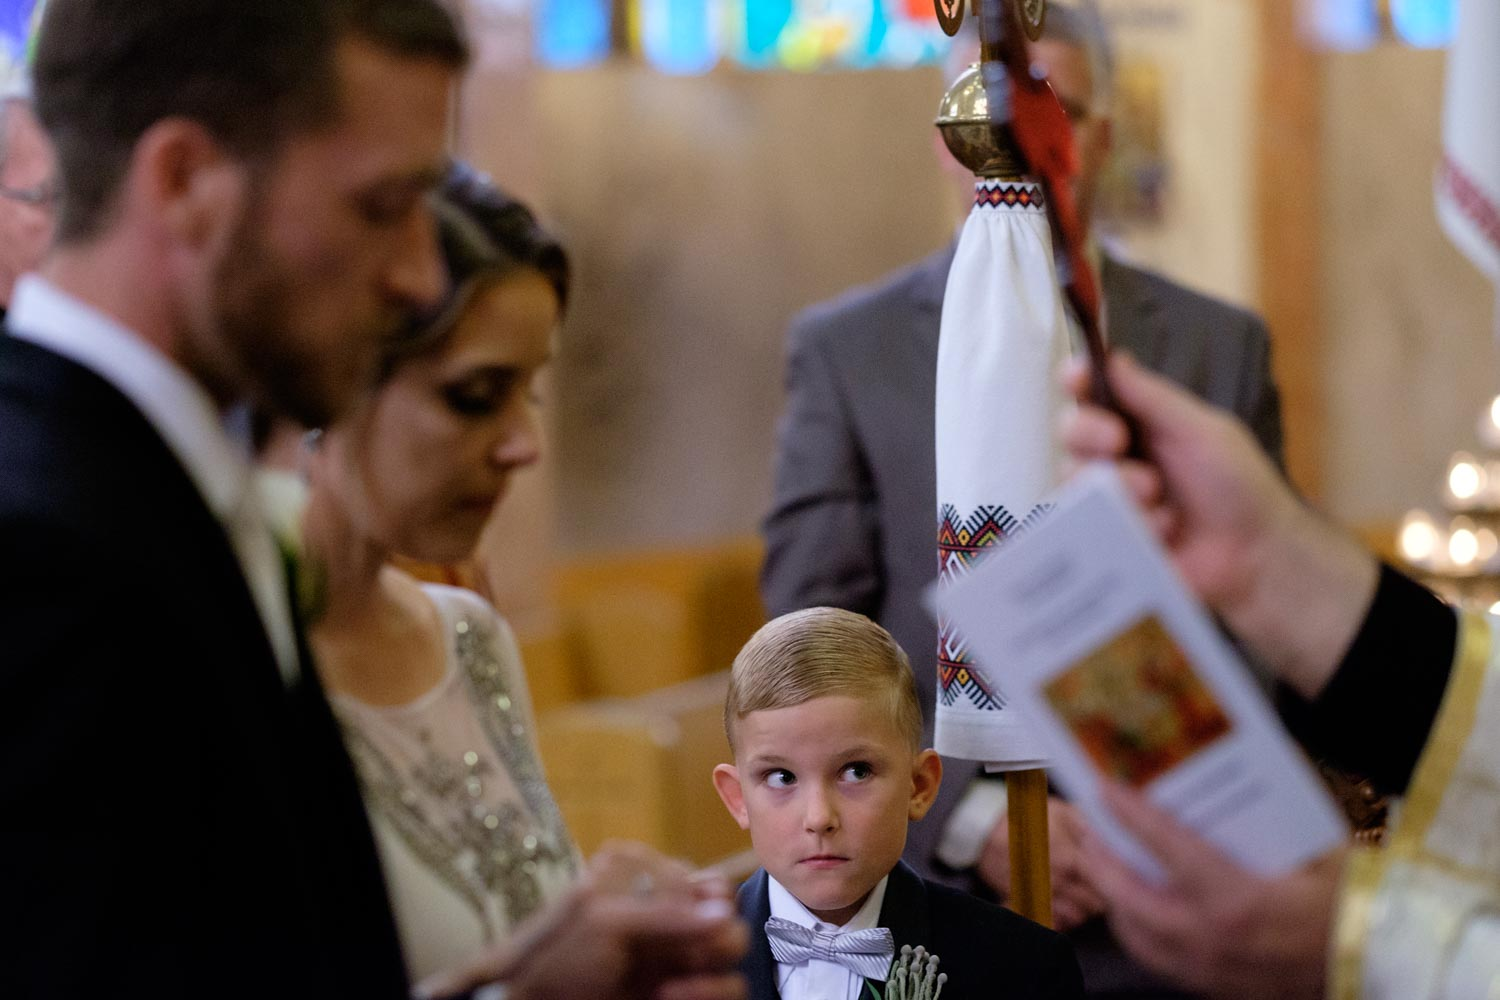 In my mind, this kid is thinking 'Dude, don't do it... girls are gross!' but him and his brother were two of the best behaved ring bearers I've ever seen.    The stood still and kept quiet even during a long Orthodox ceremony... better then my kids would have done!  :)